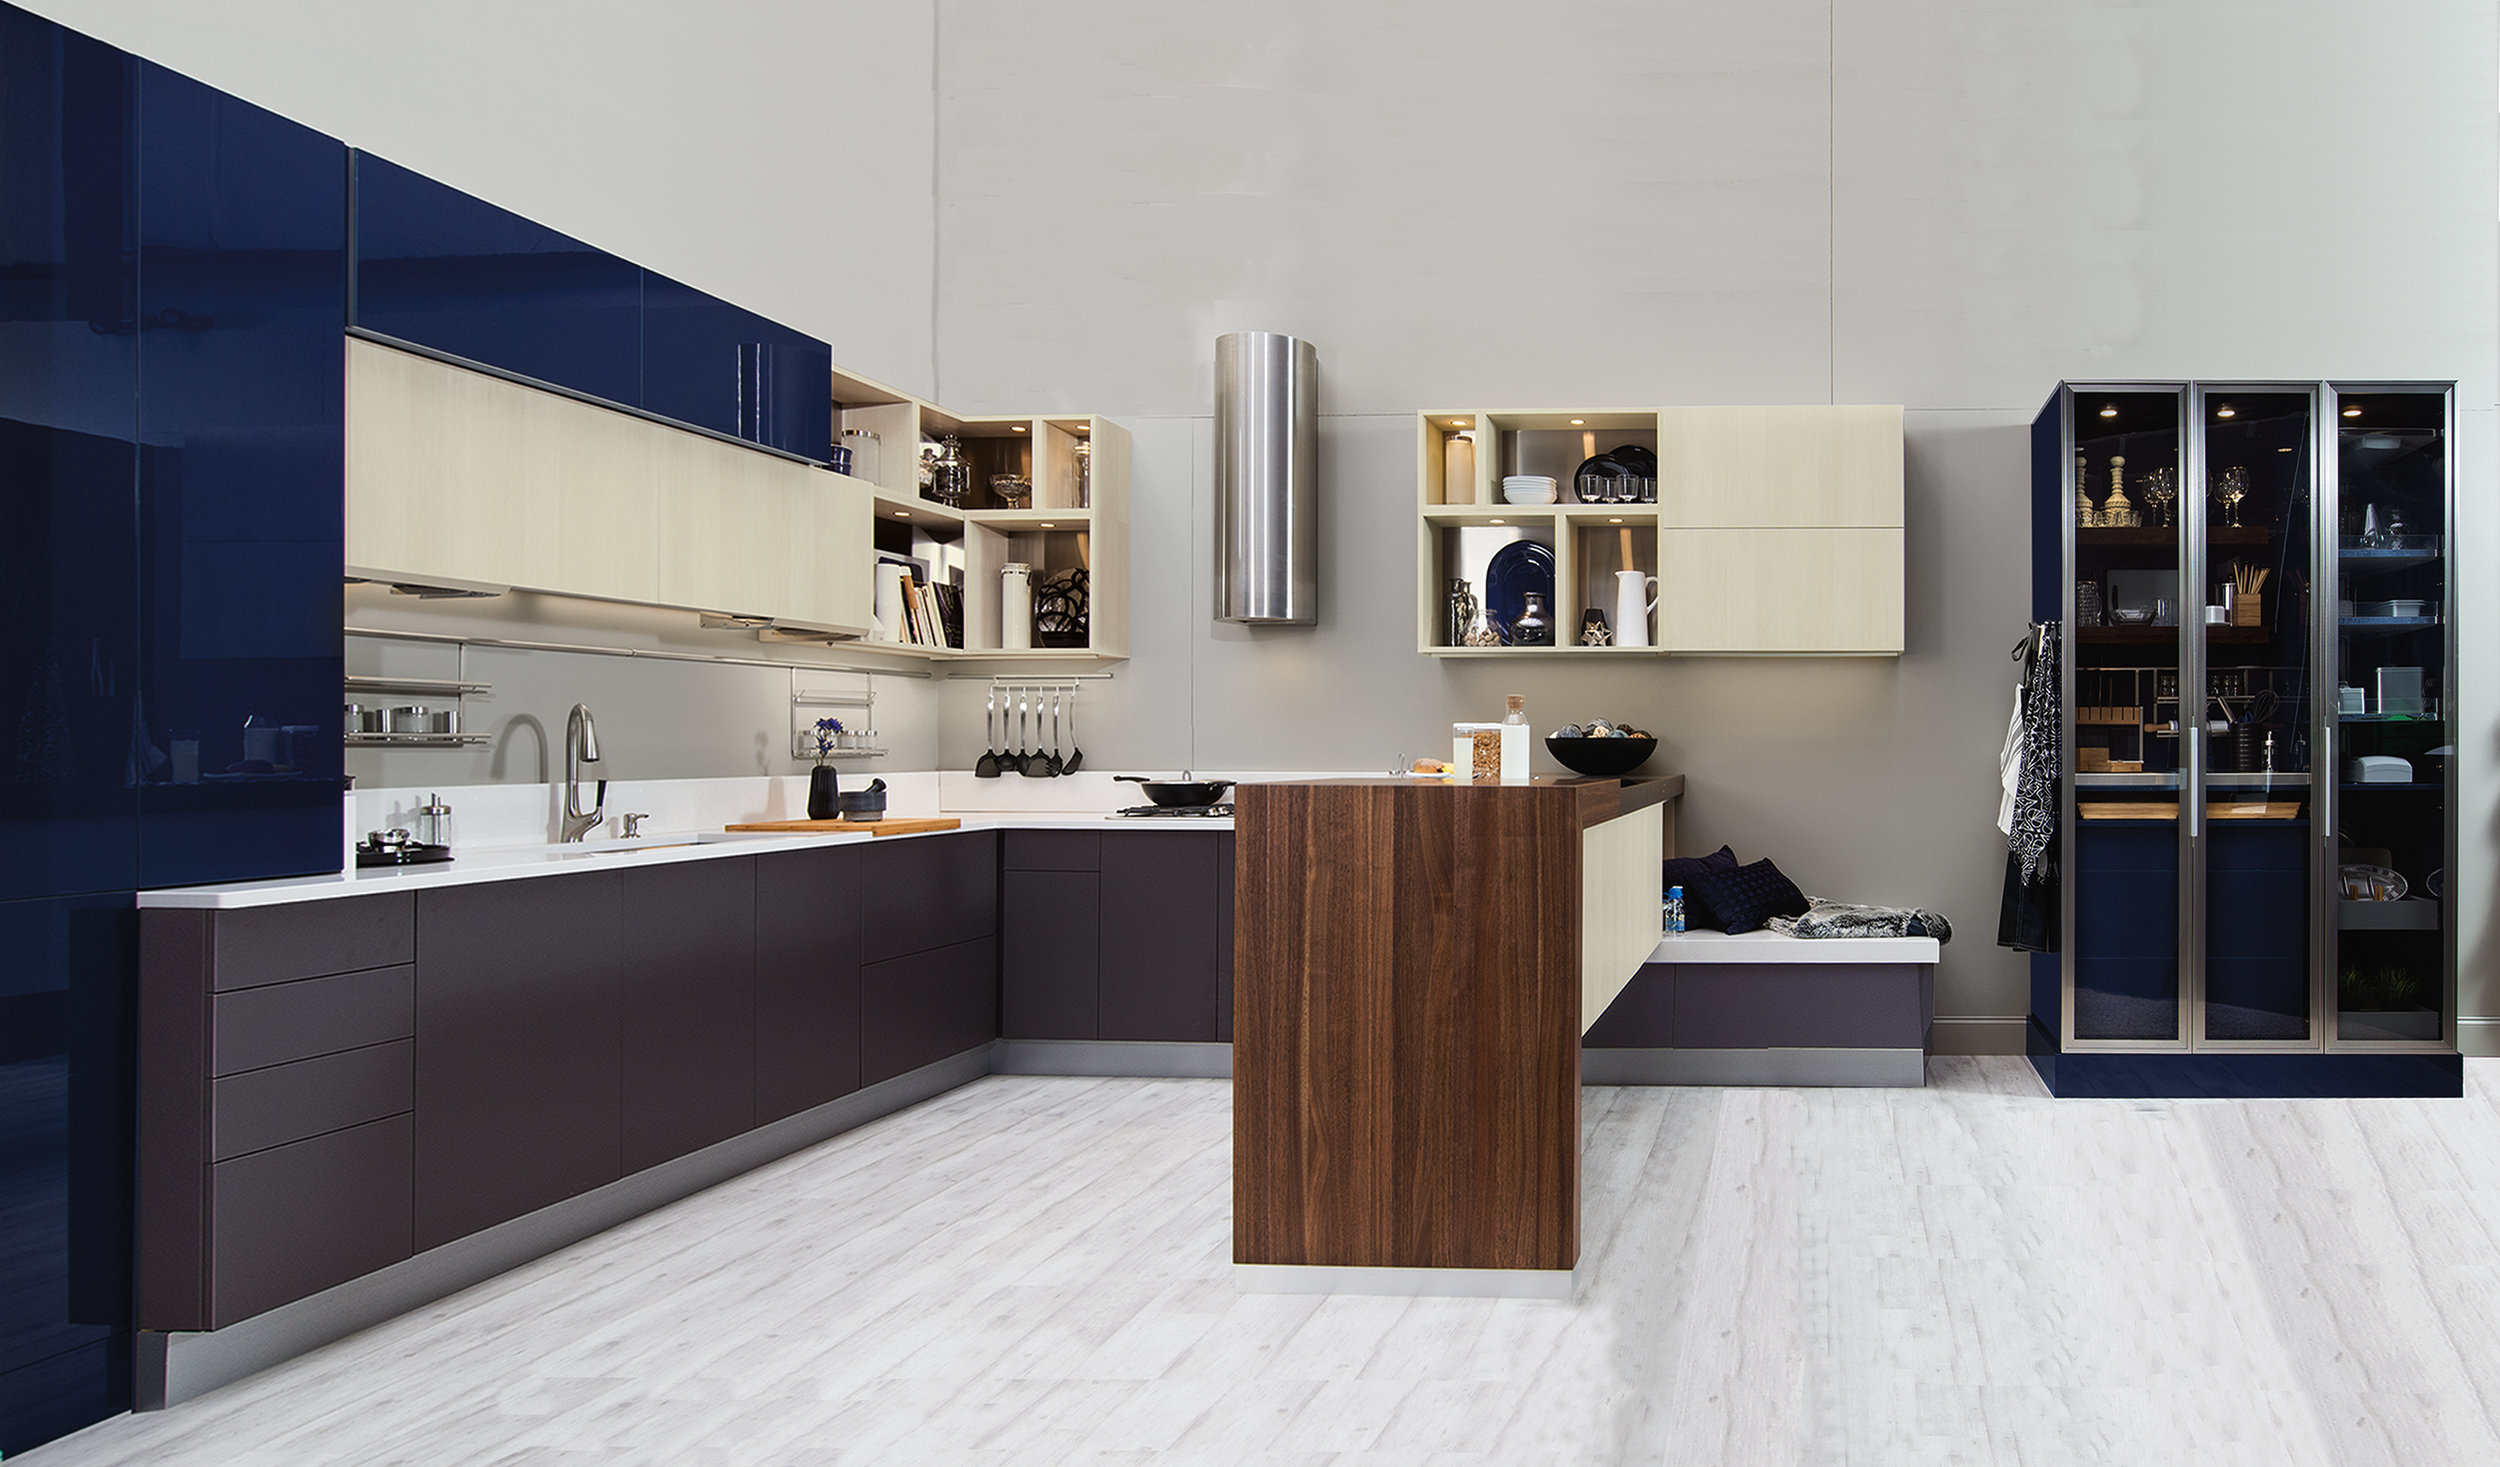 Aspire cabinetry by  Wellborn Cabinet Inc.